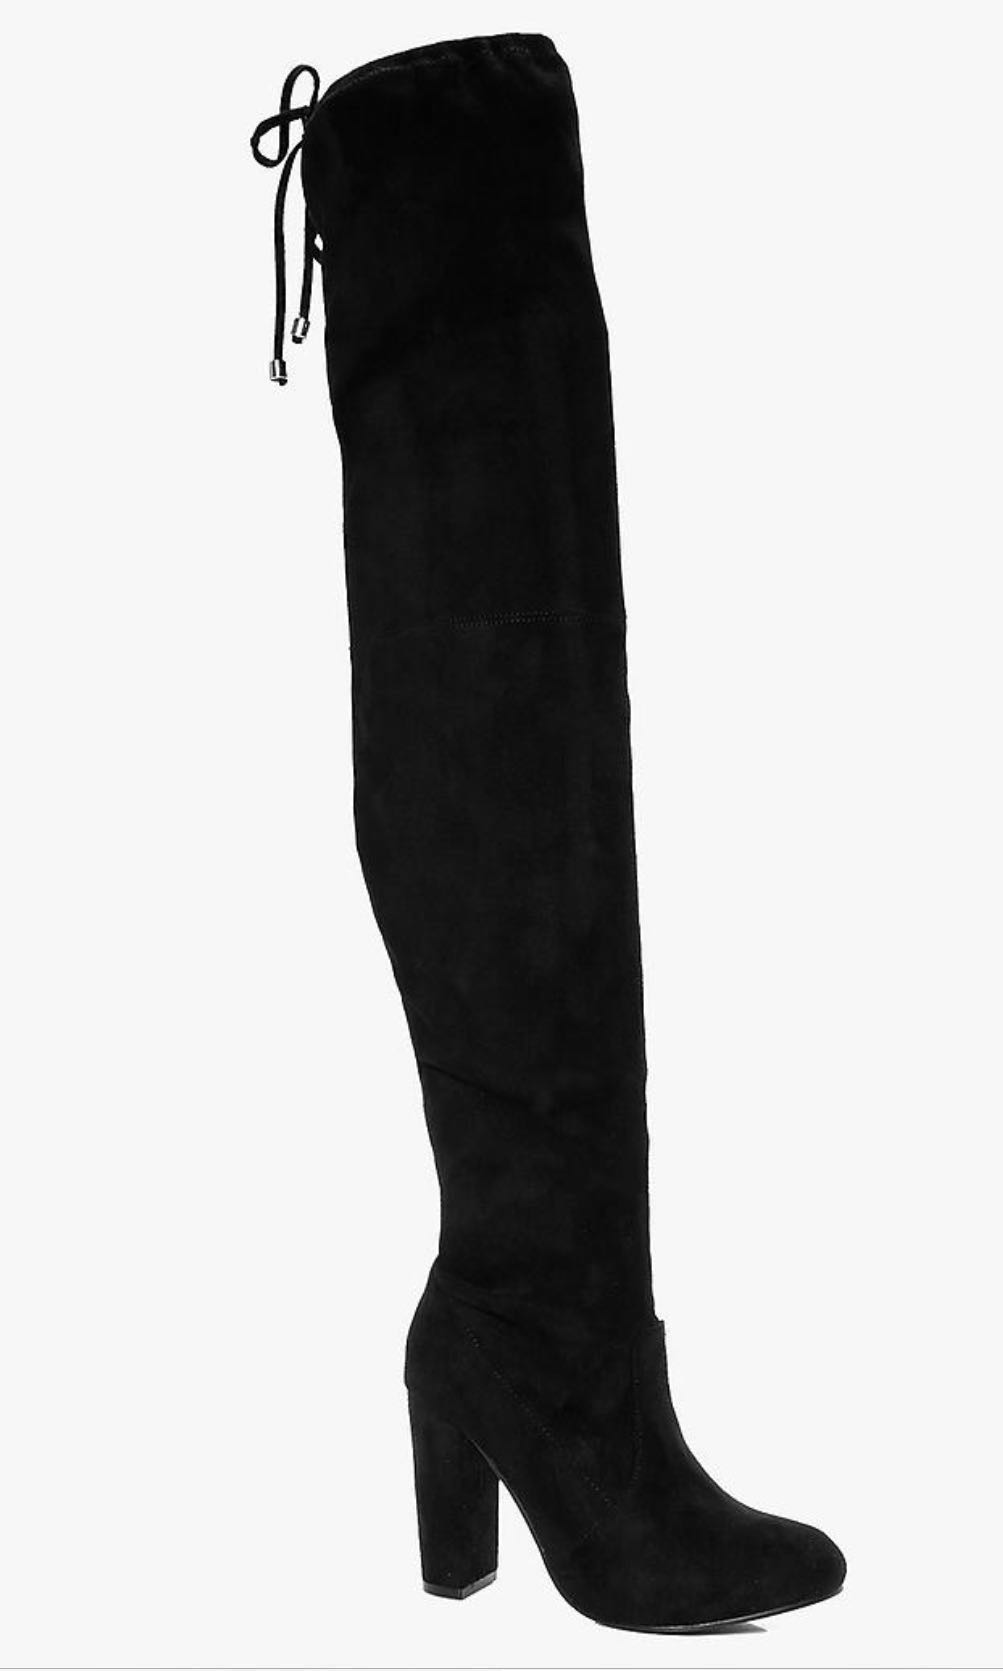 Black over knee boots